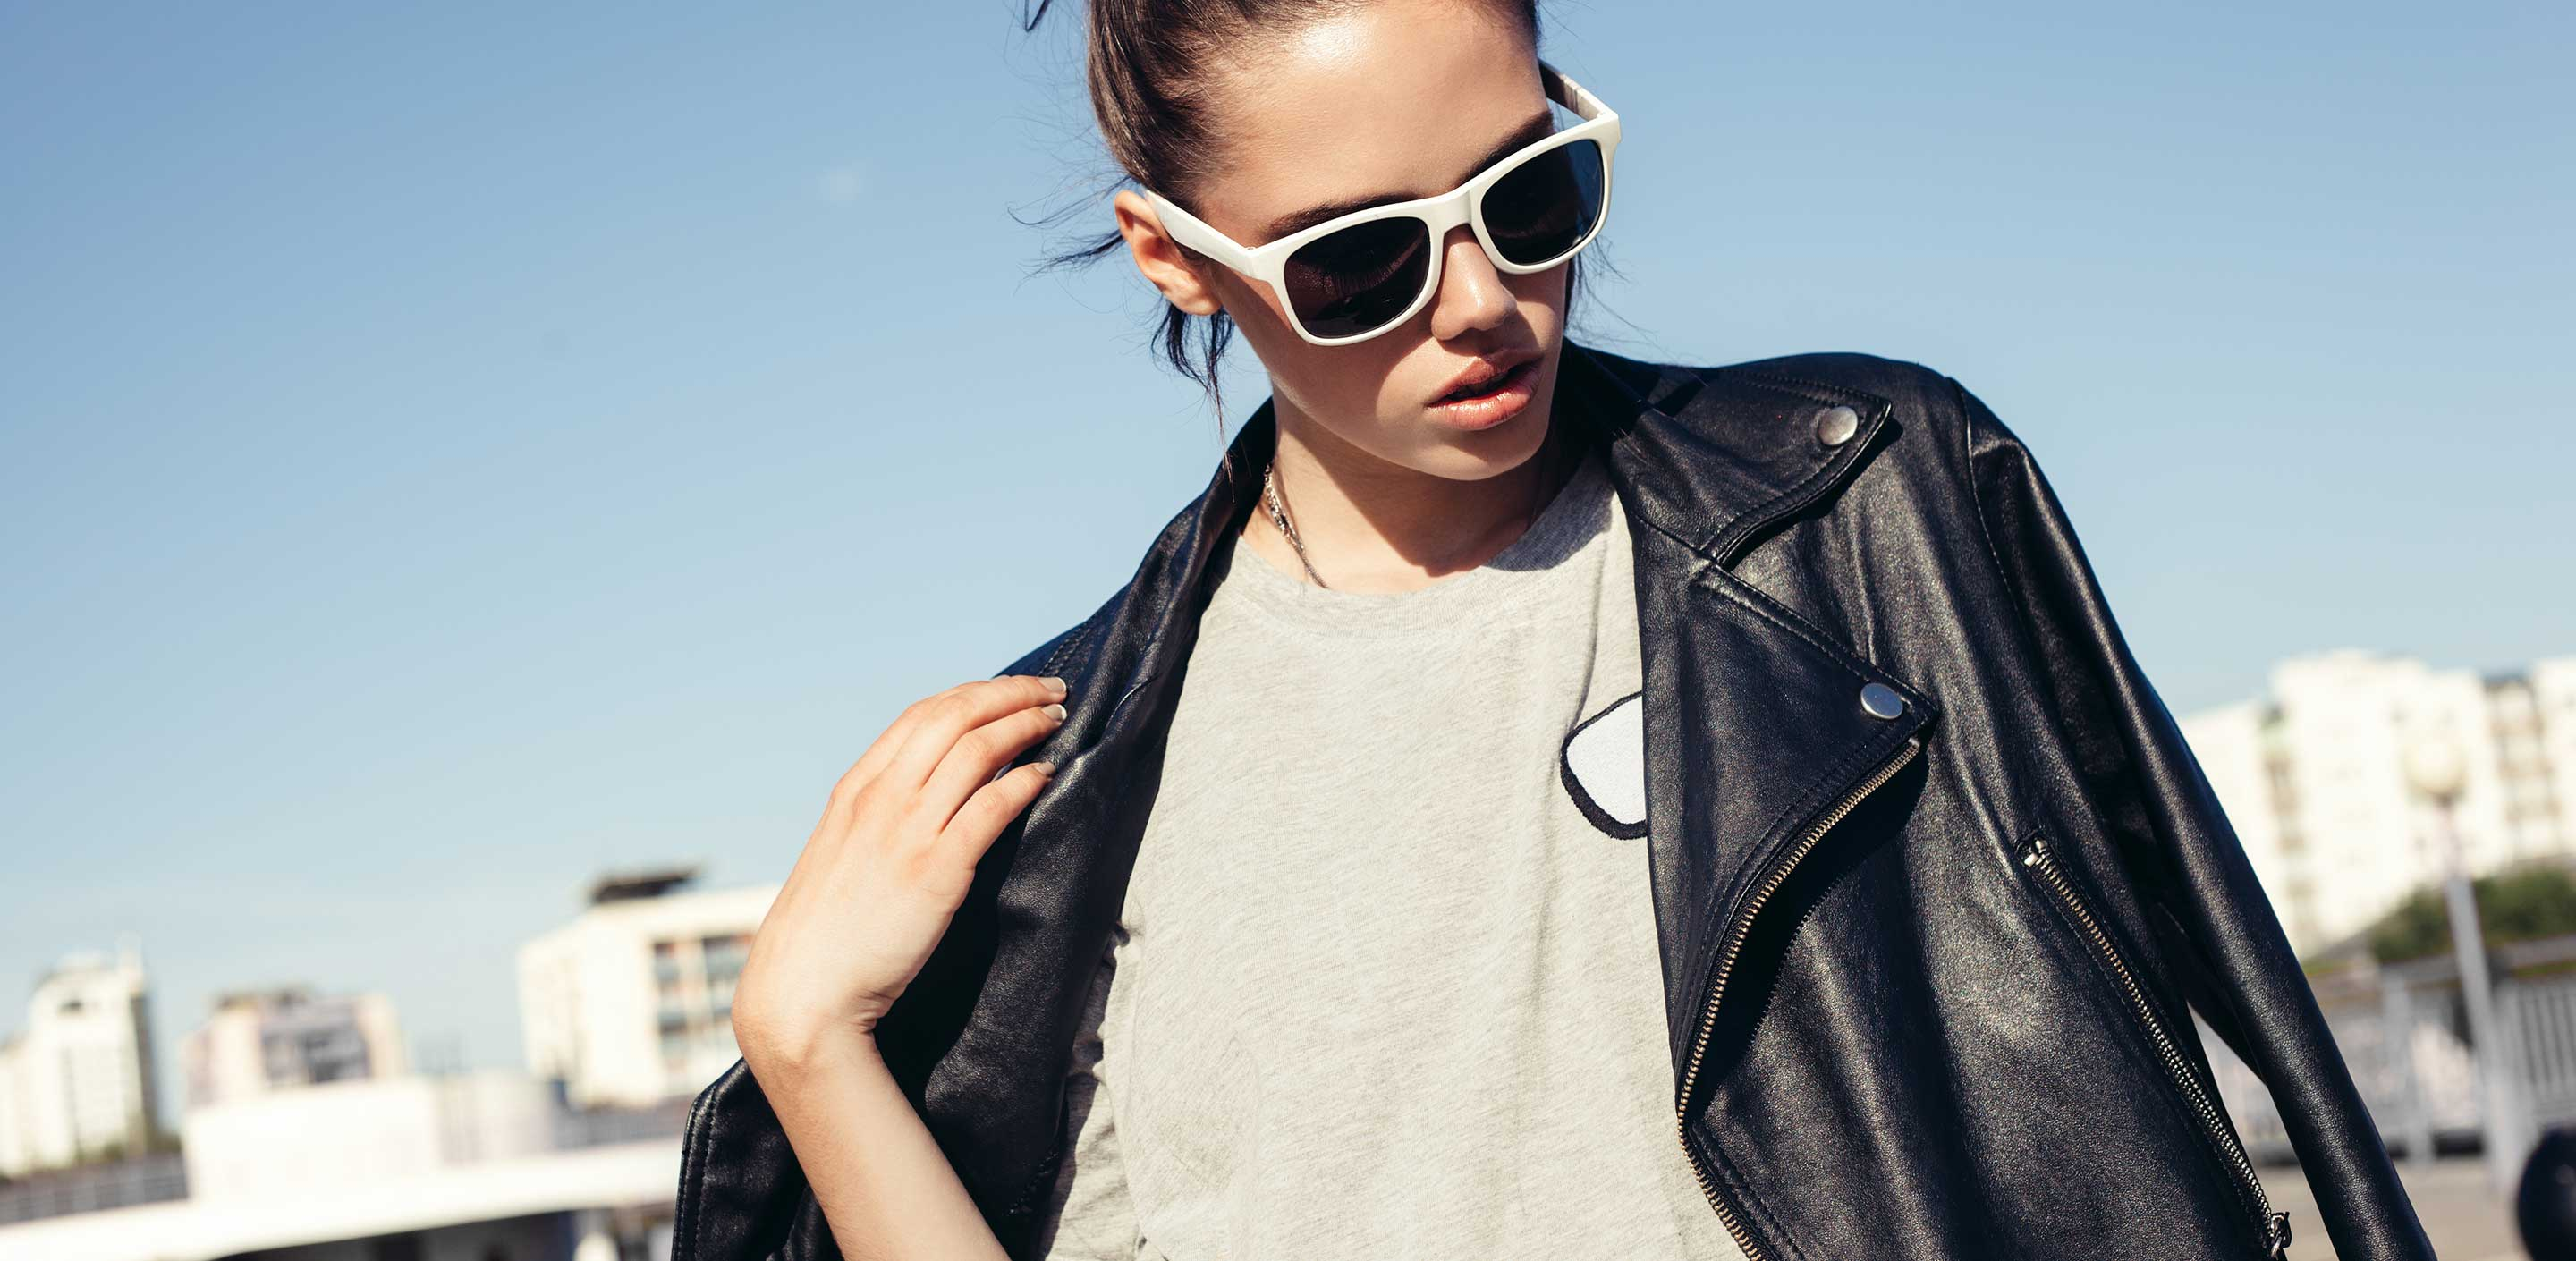 How to Keep Your Leather Jacket Shiny?